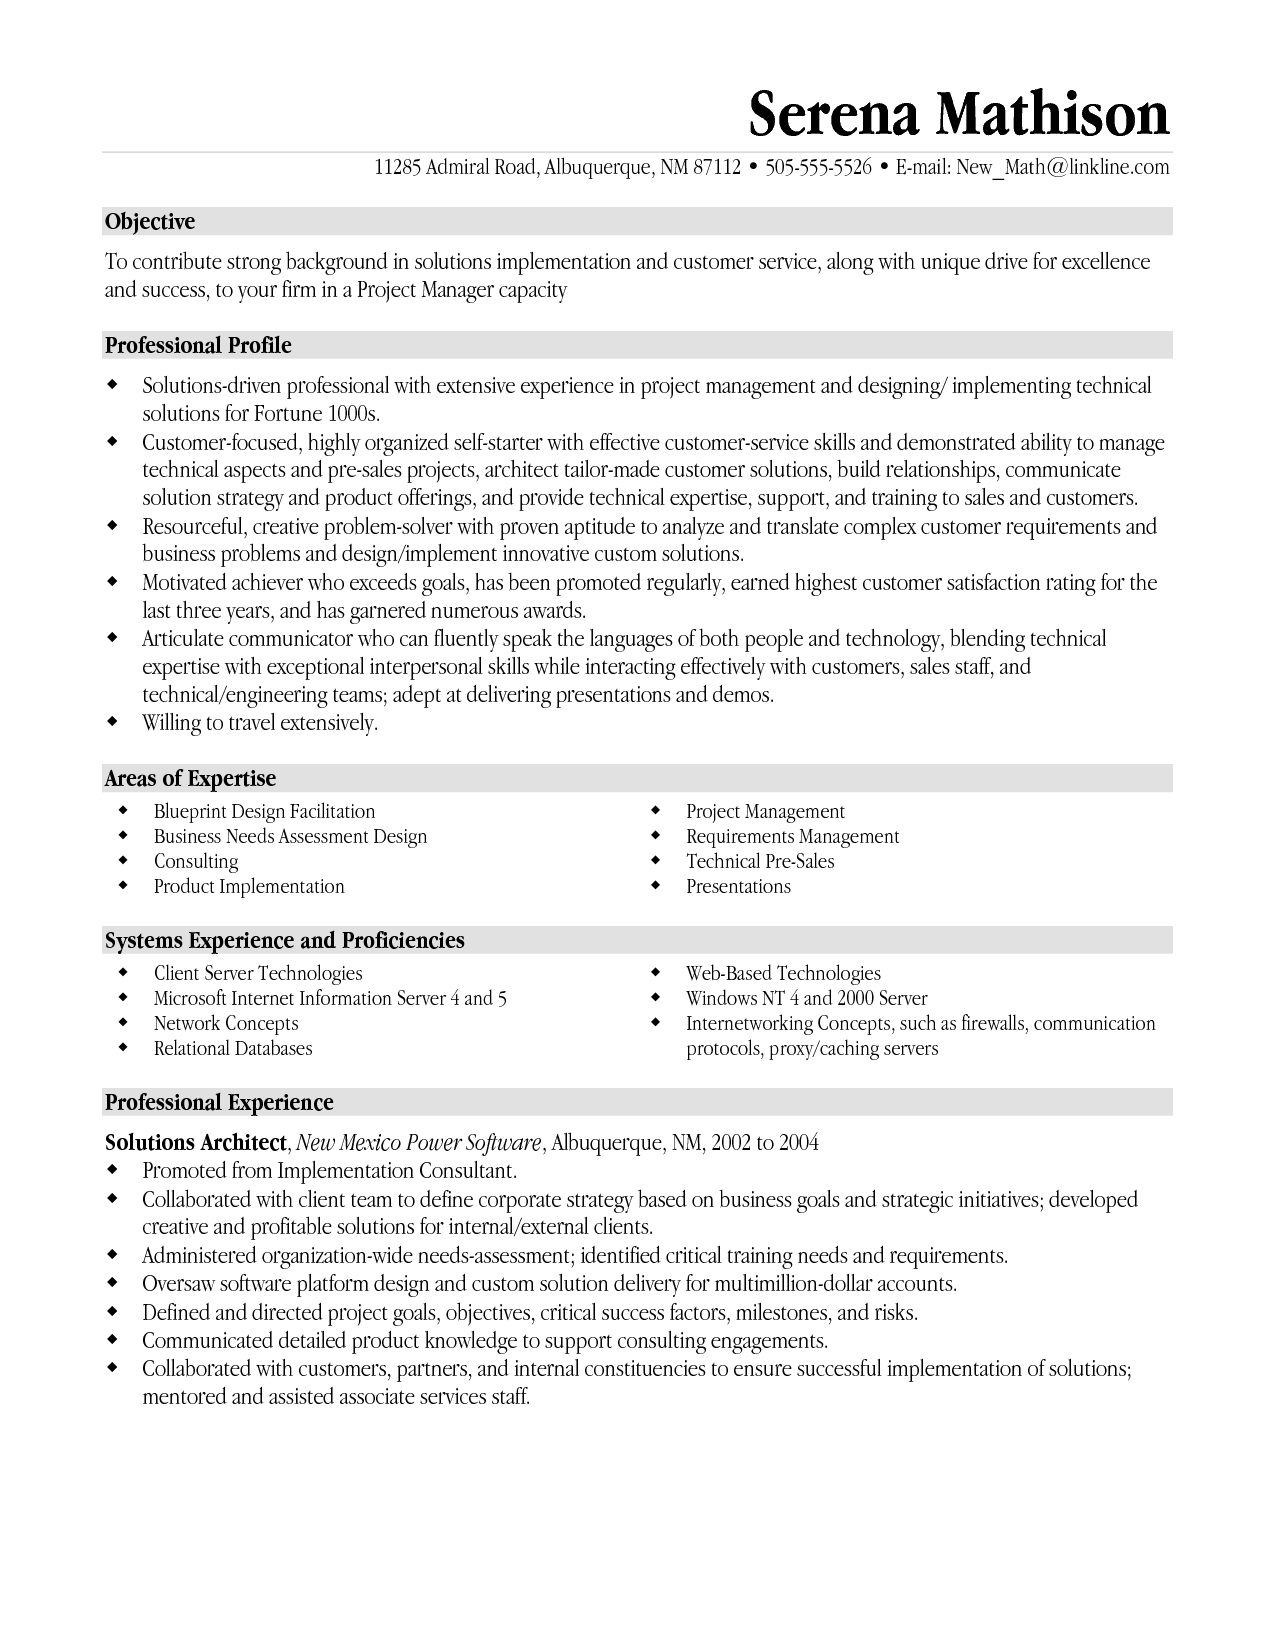 Resume templates project manager project management resume resume templates project manager project management resume yelopaper